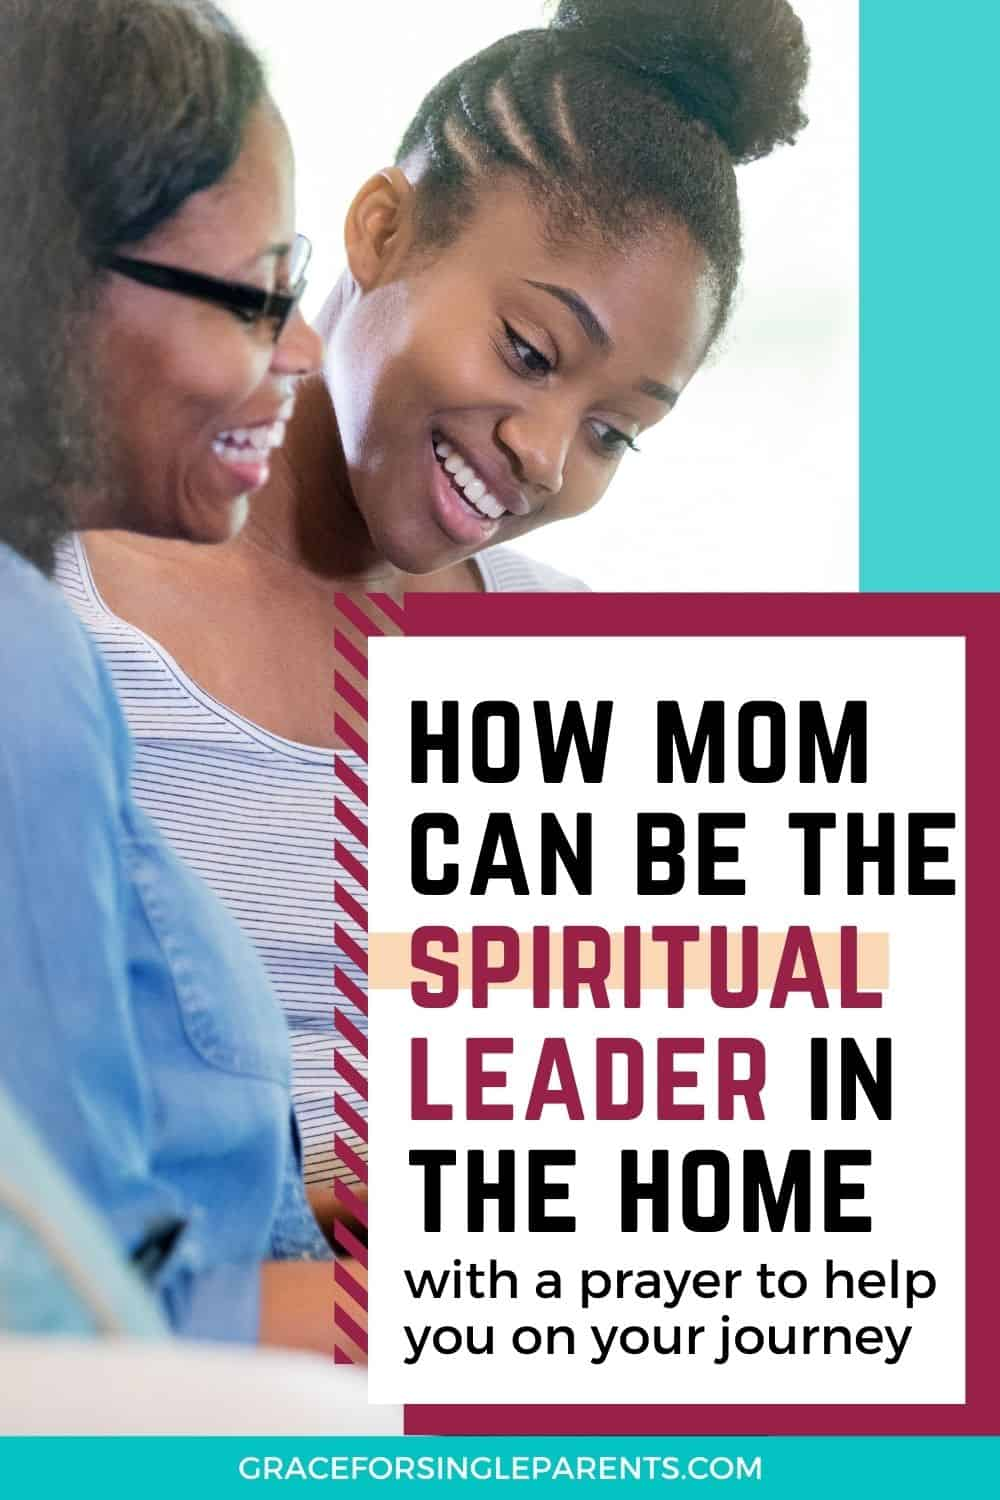 How Mom Can Be the Spiritual Leader in the Home